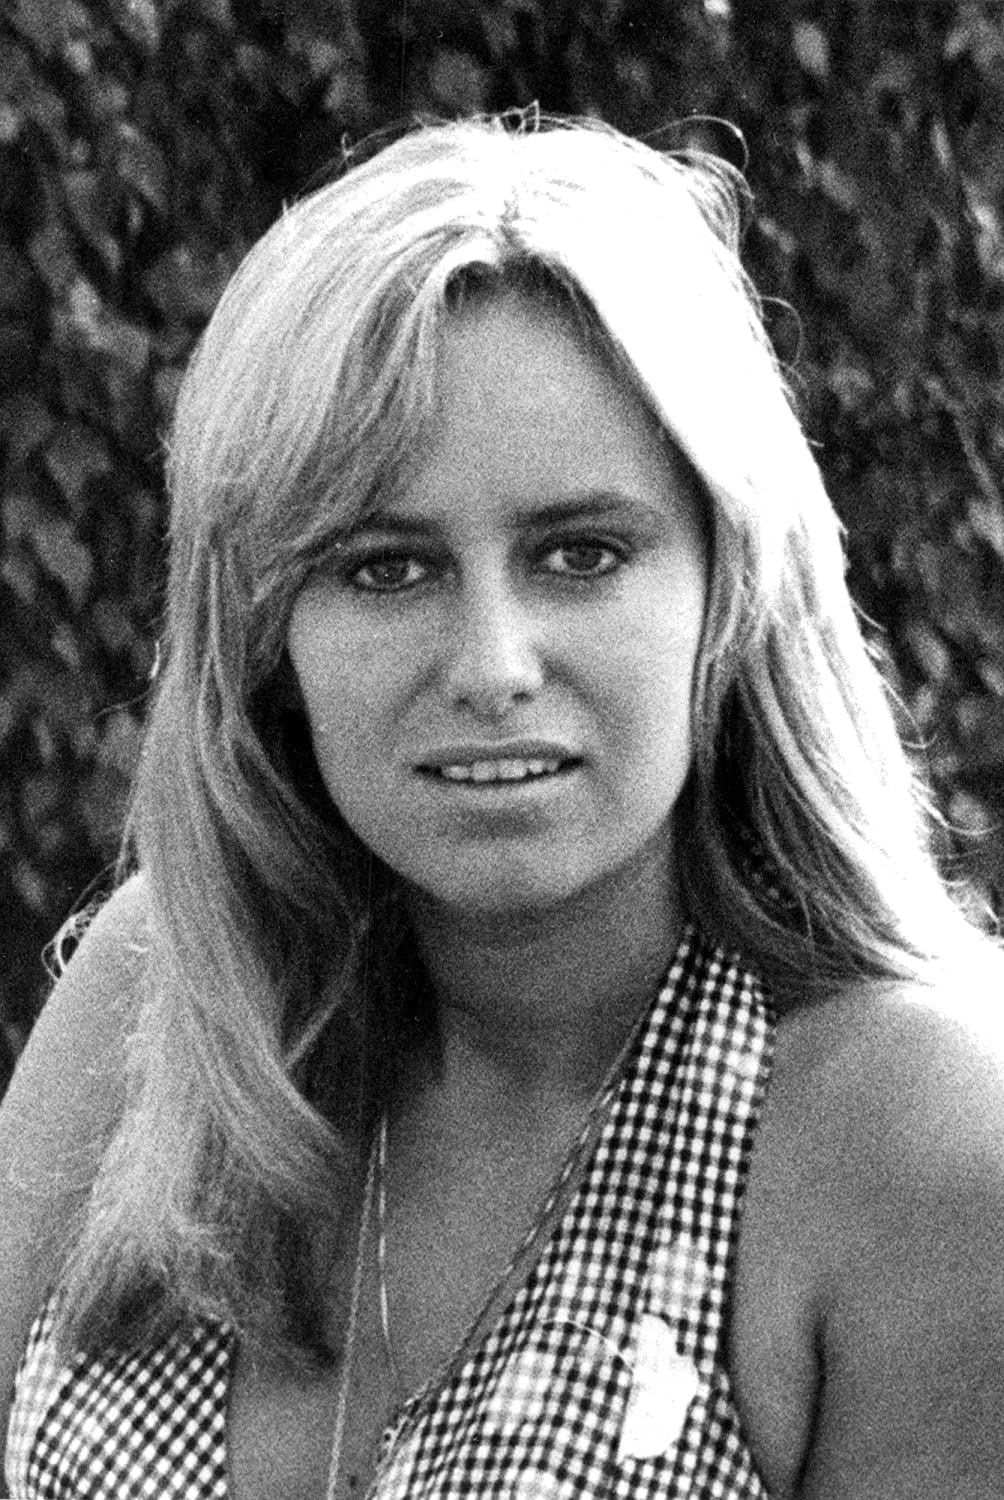 Susan George (actress) nudes (87 pictures) Bikini, Snapchat, butt